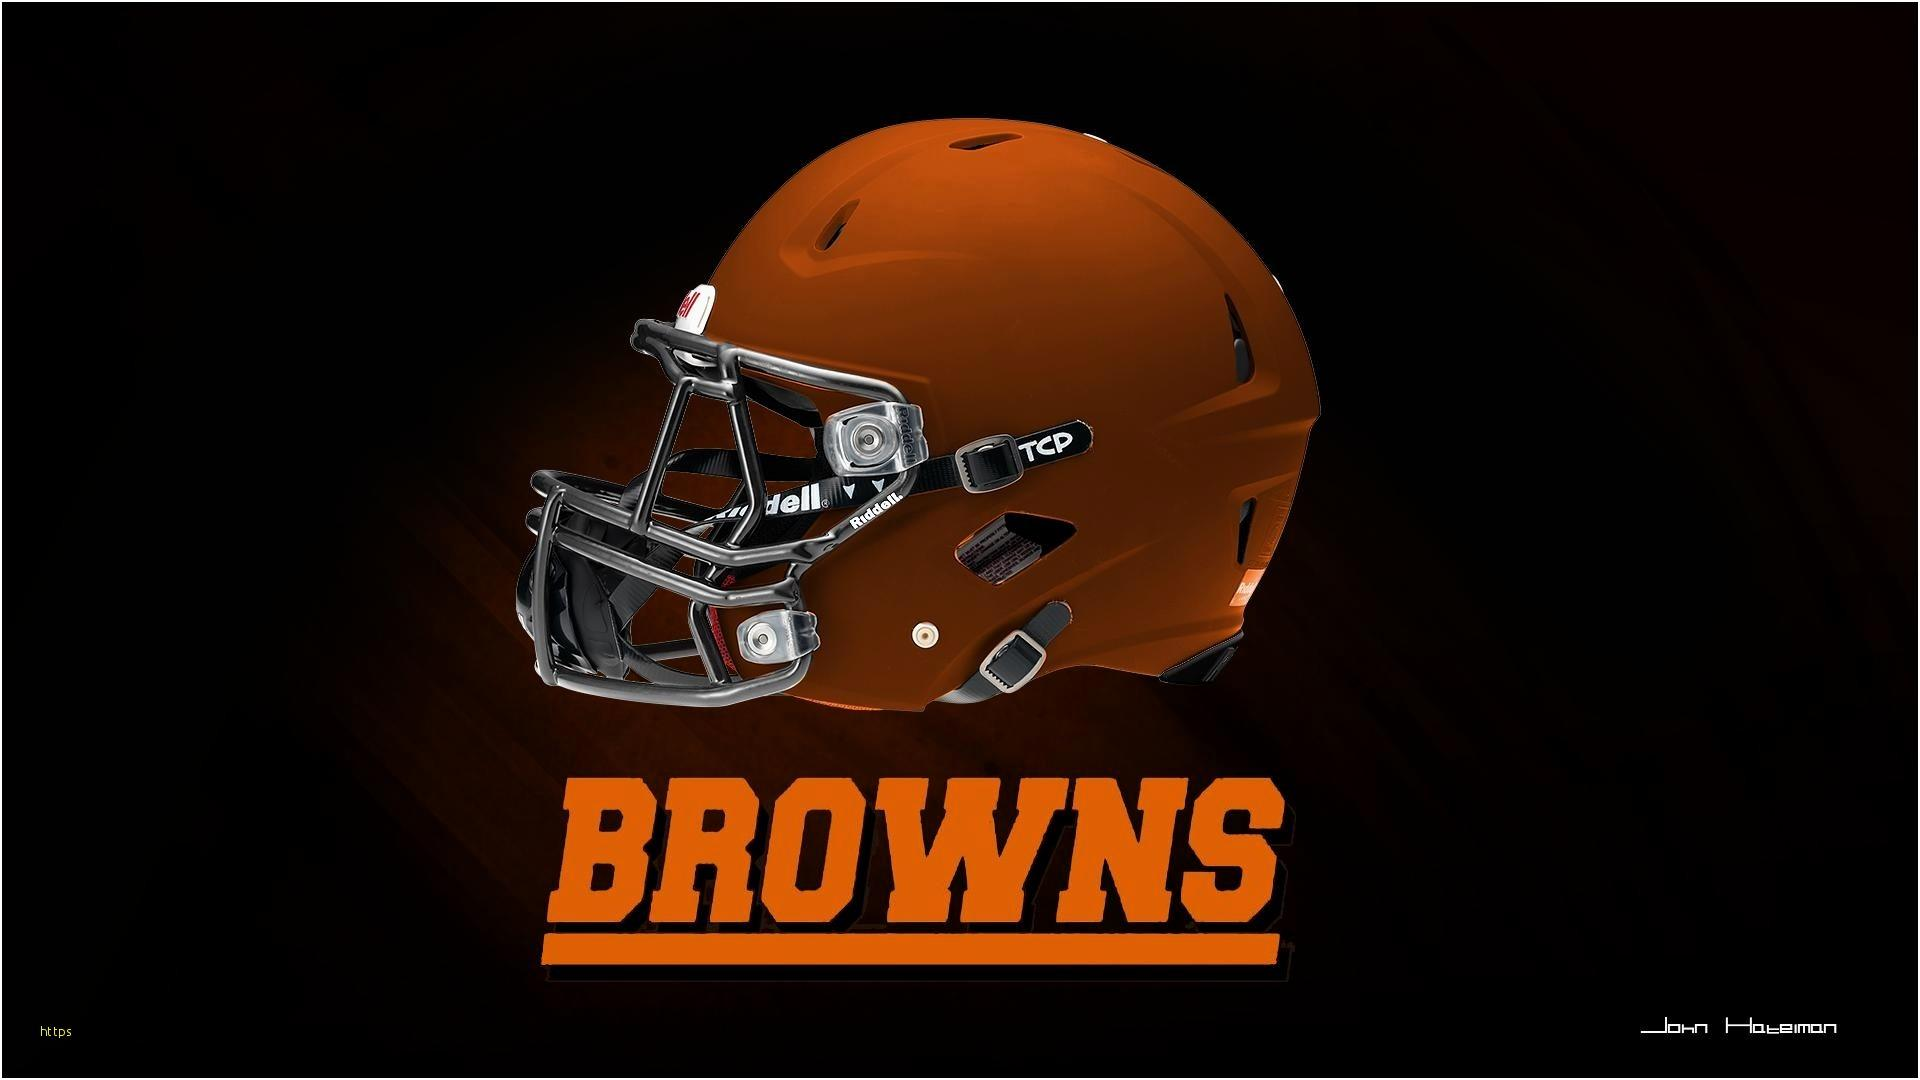 Cleveland Browns Wallpaper Inspirational Cleveland Browns Schedule ...